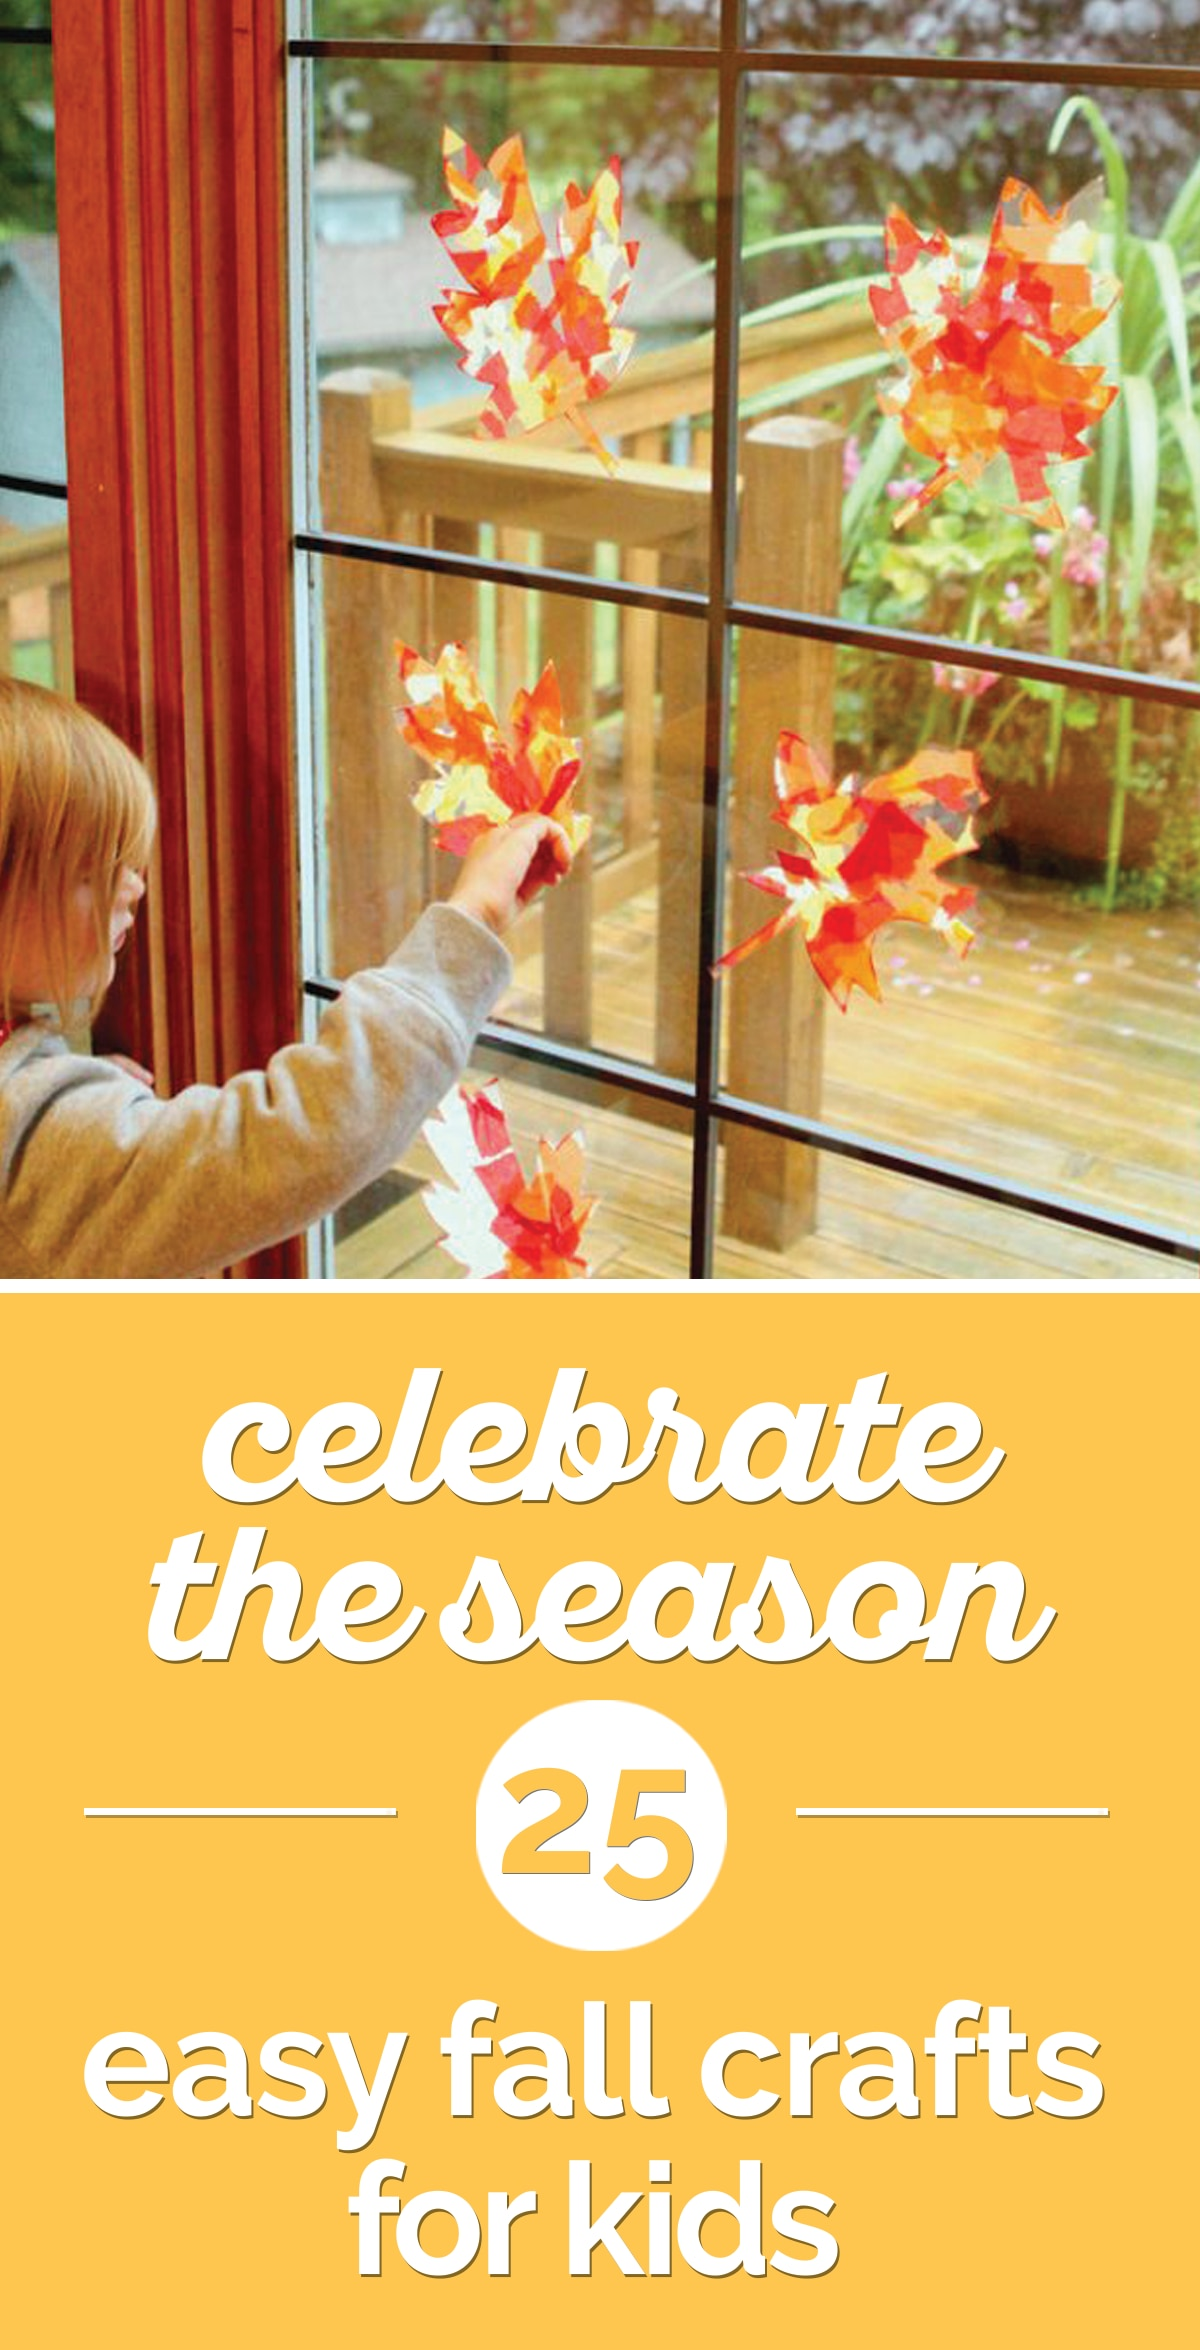 Celebrate the Season: 25 Easy Fall Crafts for Kids | the good stuff